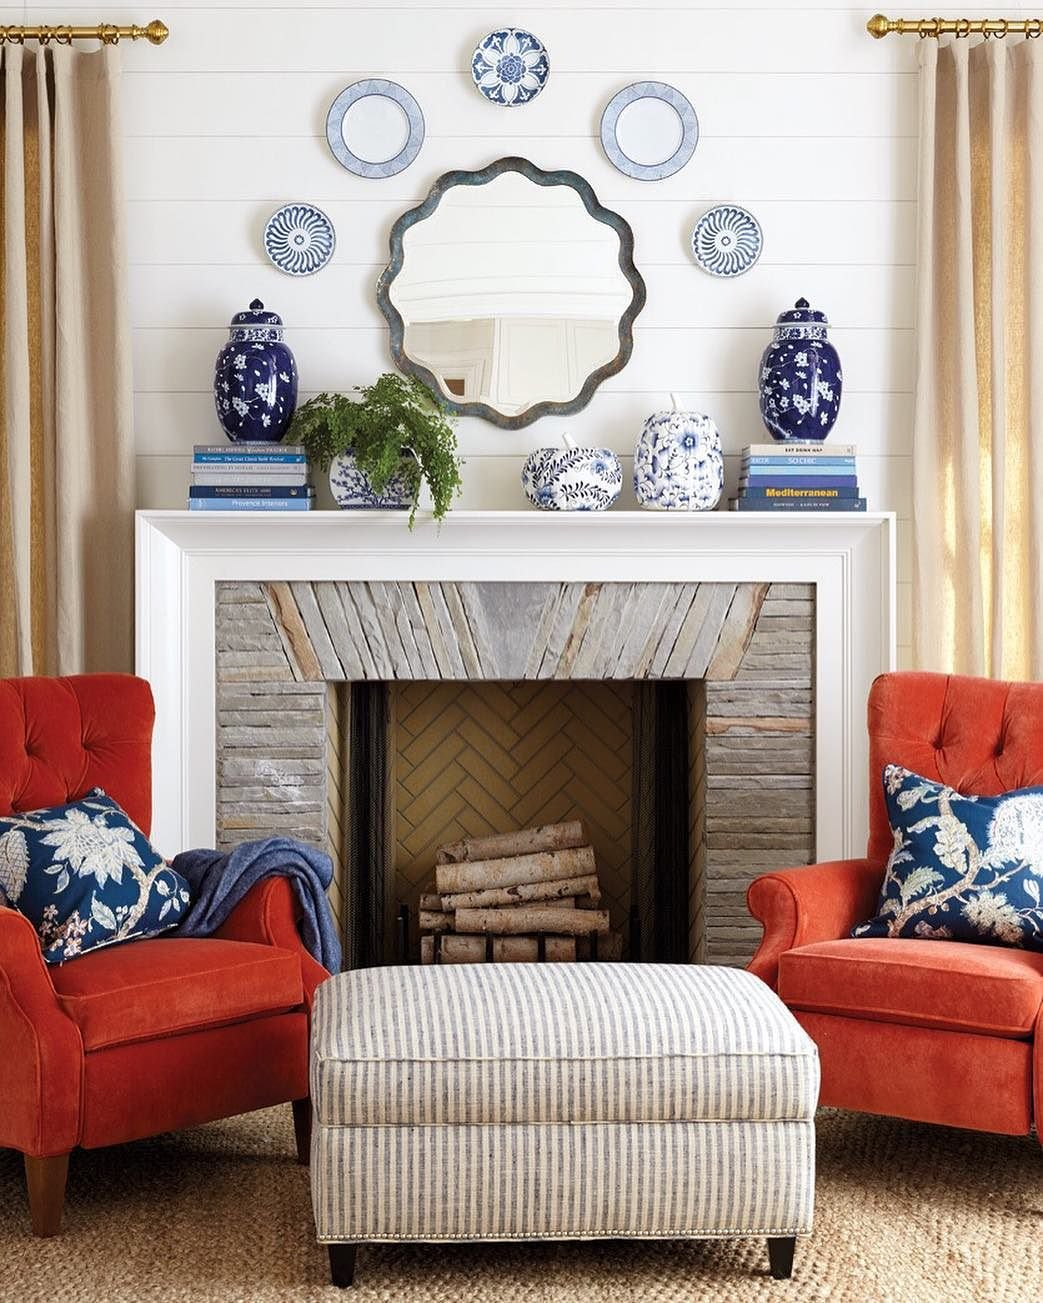 3 Ways to Decorate your Mantel for Fall - How To Decorate Kitchen Fireplace Mantel Ideas Html on fireplace mantels product, gas fireplace ideas, windows ideas, crown molding ideas, fireplace decorating ideas, fireplace inserts, fireplace mantels over brick, stone fireplace ideas, fireplace design ideas, fireplace surround ideas, table ideas, fireplace tile, fireplace screens, fireplace outdoor ideas, fireplace fronts ideas, fireplace mantels wood, kitchen ideas, fireplace wall ideas, fireplace with wood storage, fireplace mantle,